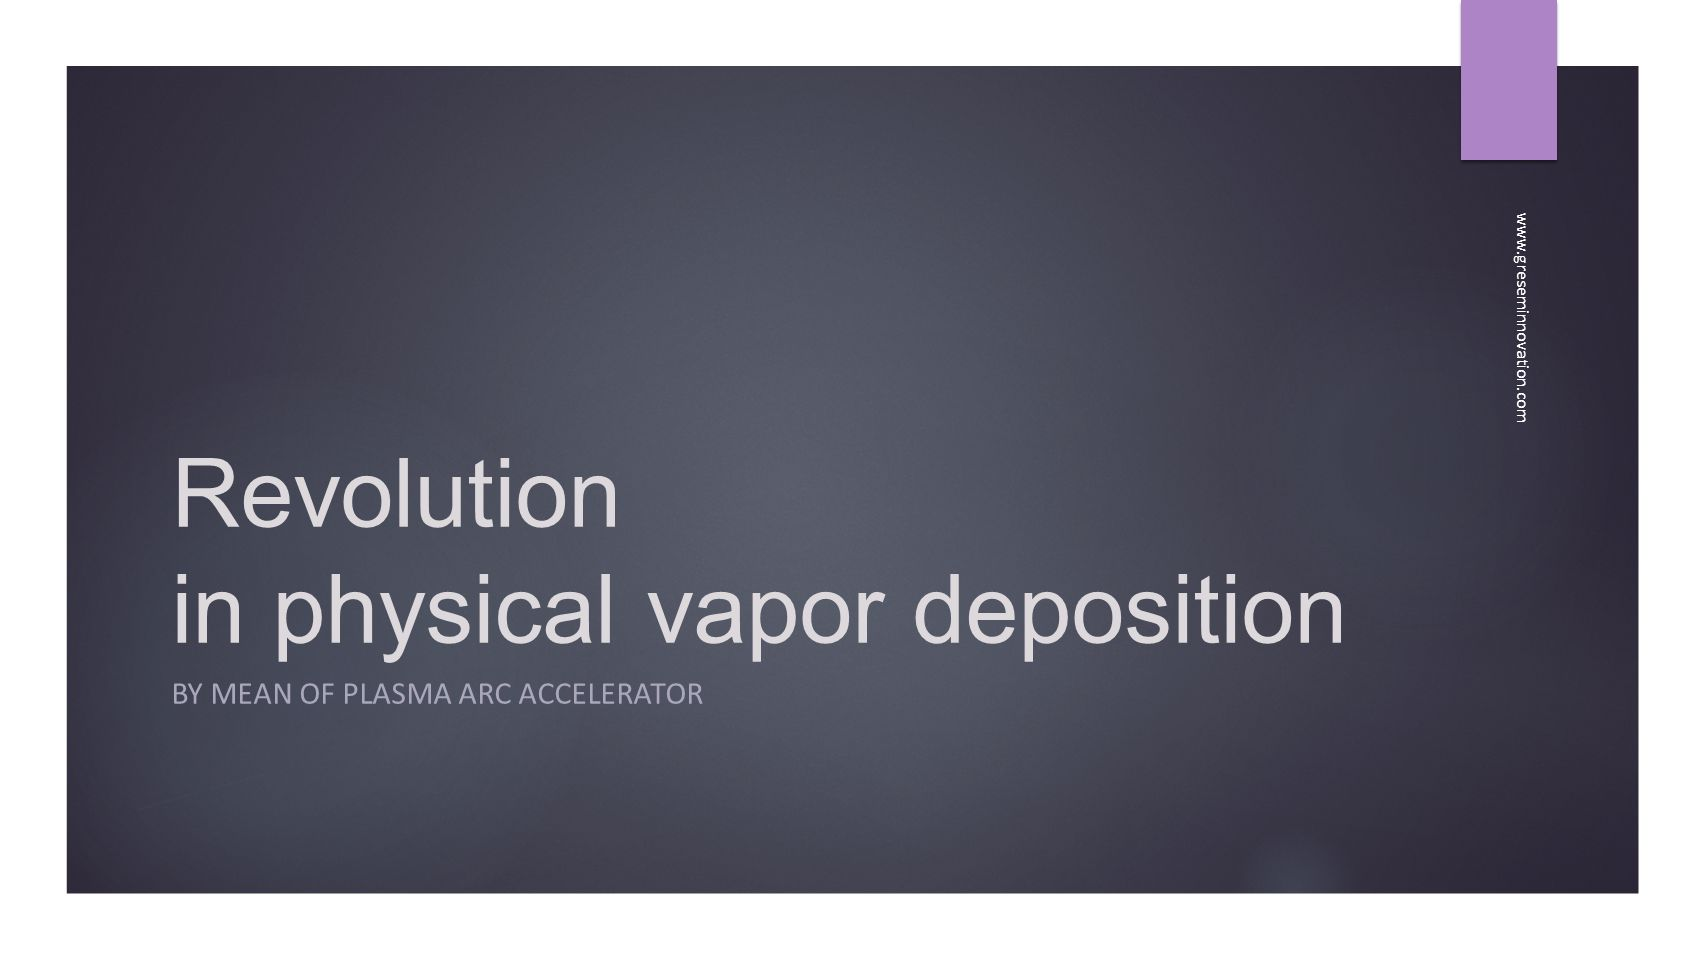 Revolution in physical vapor deposition BY MEAN OF PLASMA ARC ACCELERATOR www.greseminnovation.com